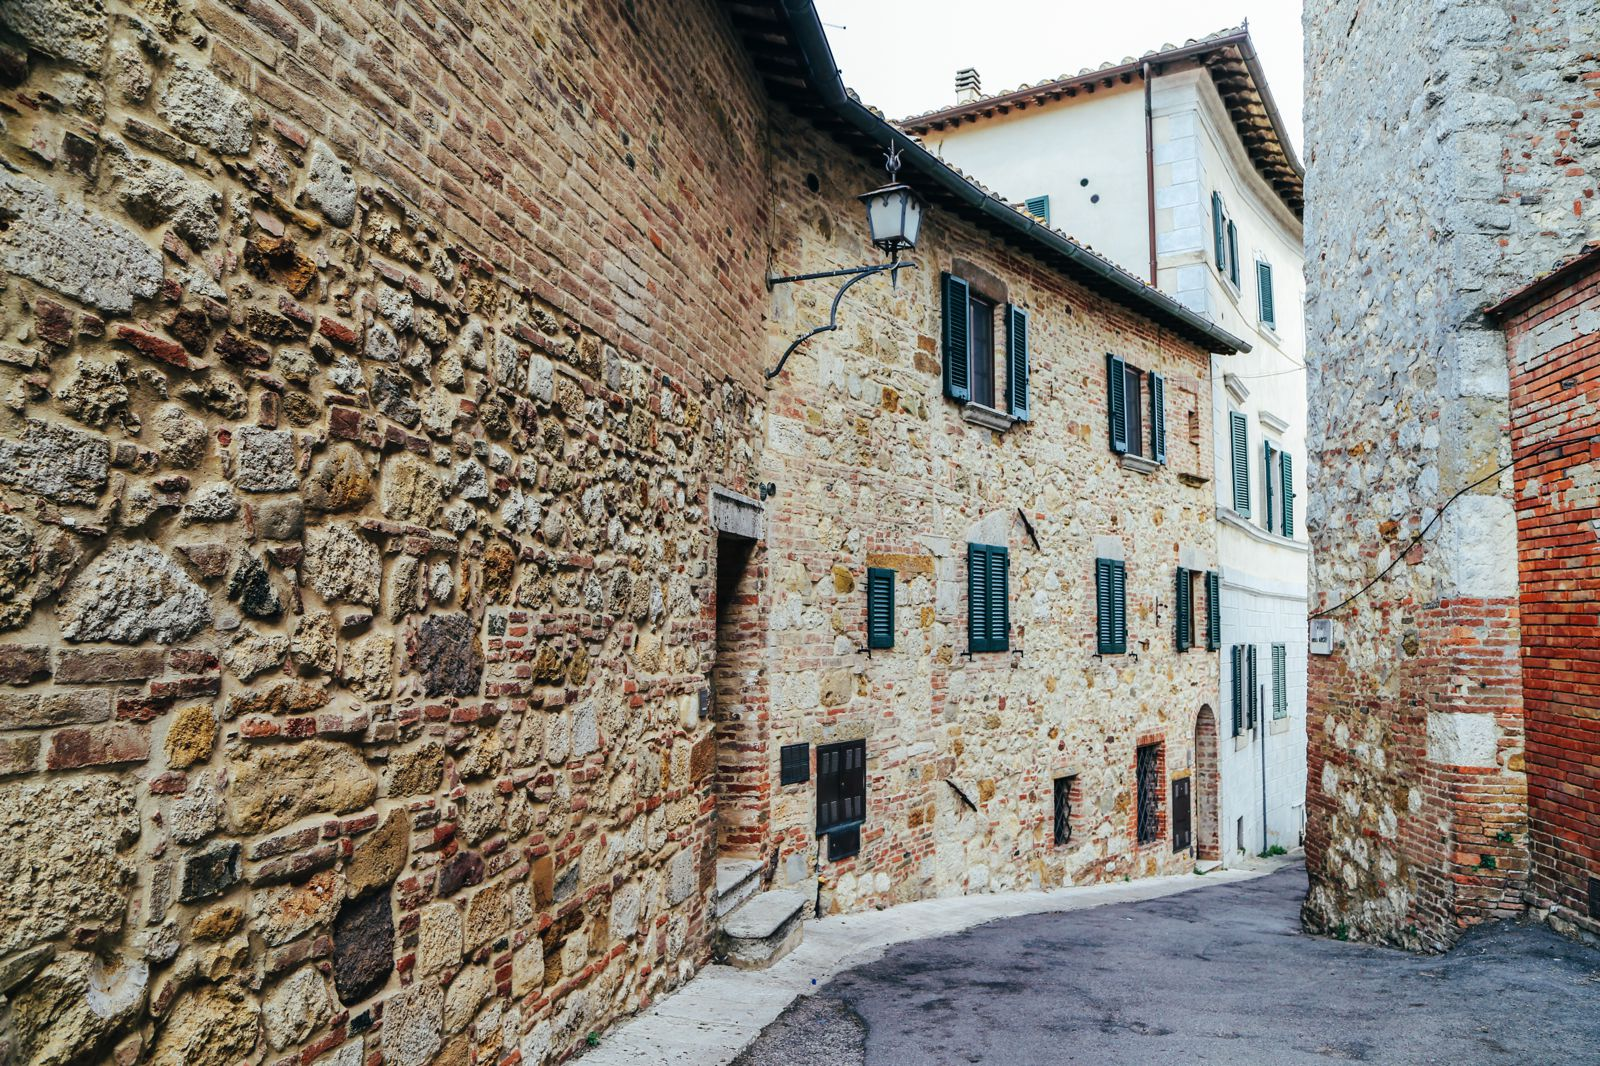 Montepulciano - The Italian Medieval Town In The Mountains... (17)